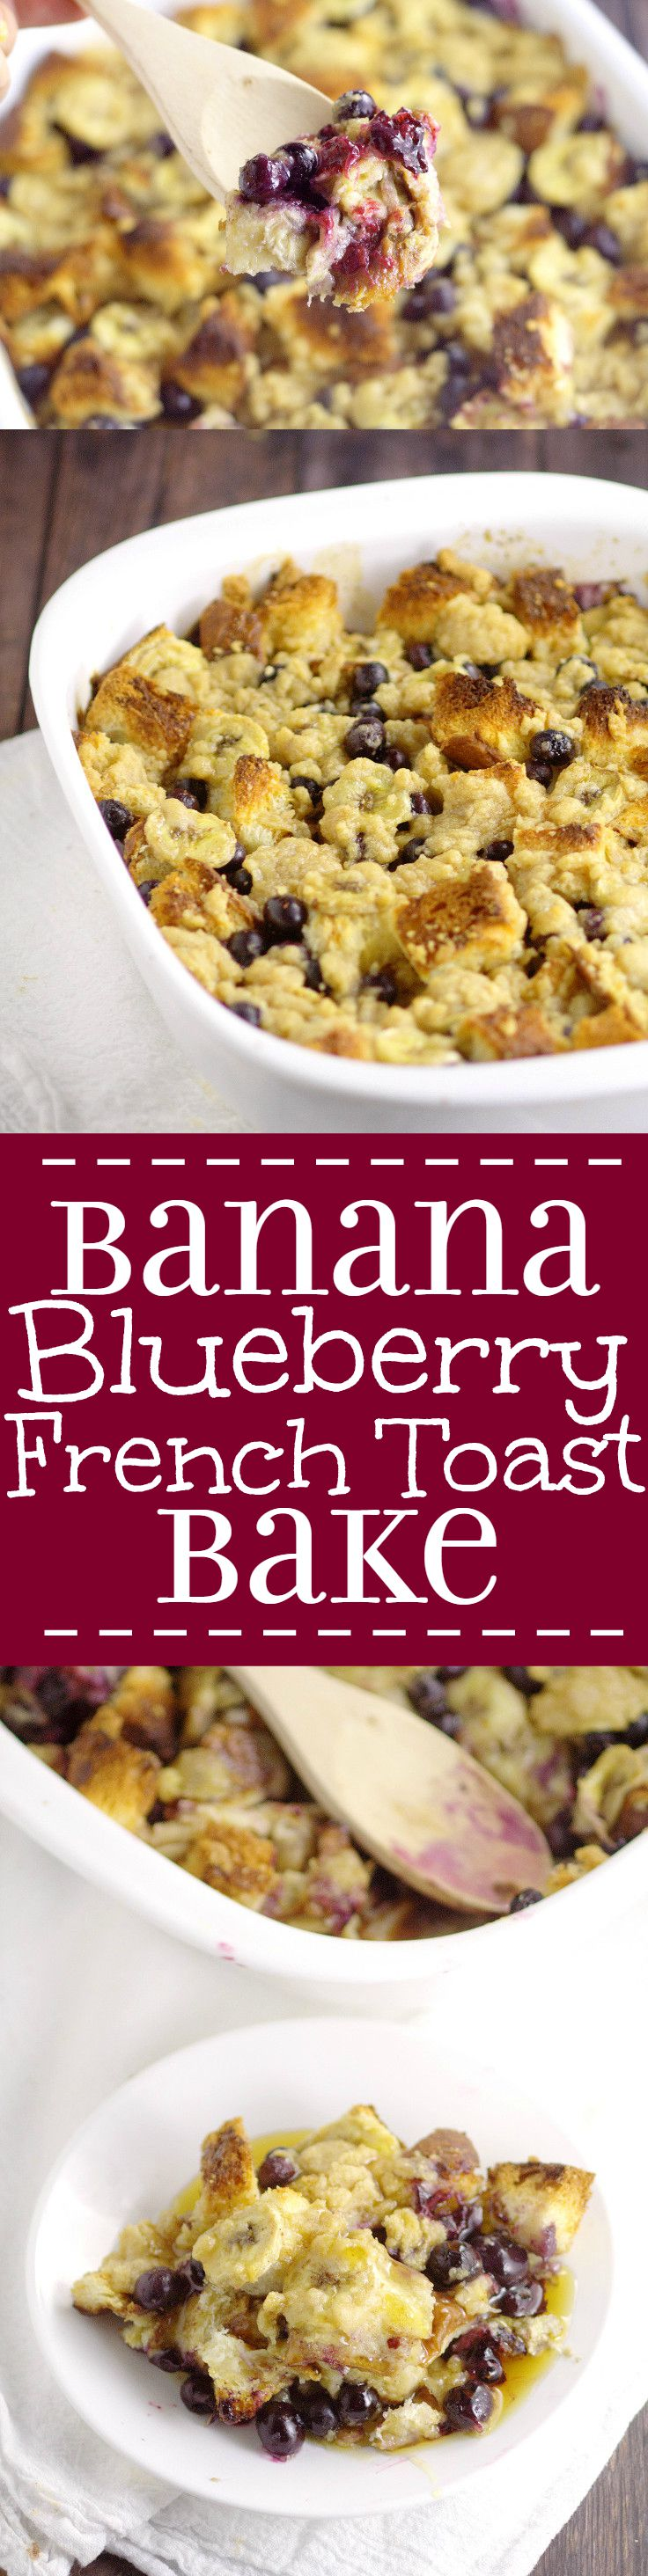 Banana Blueberry French Toast Bake Recipe Is A Sweet And Amazing Overnight  Breakfast Or Brunch Recipe